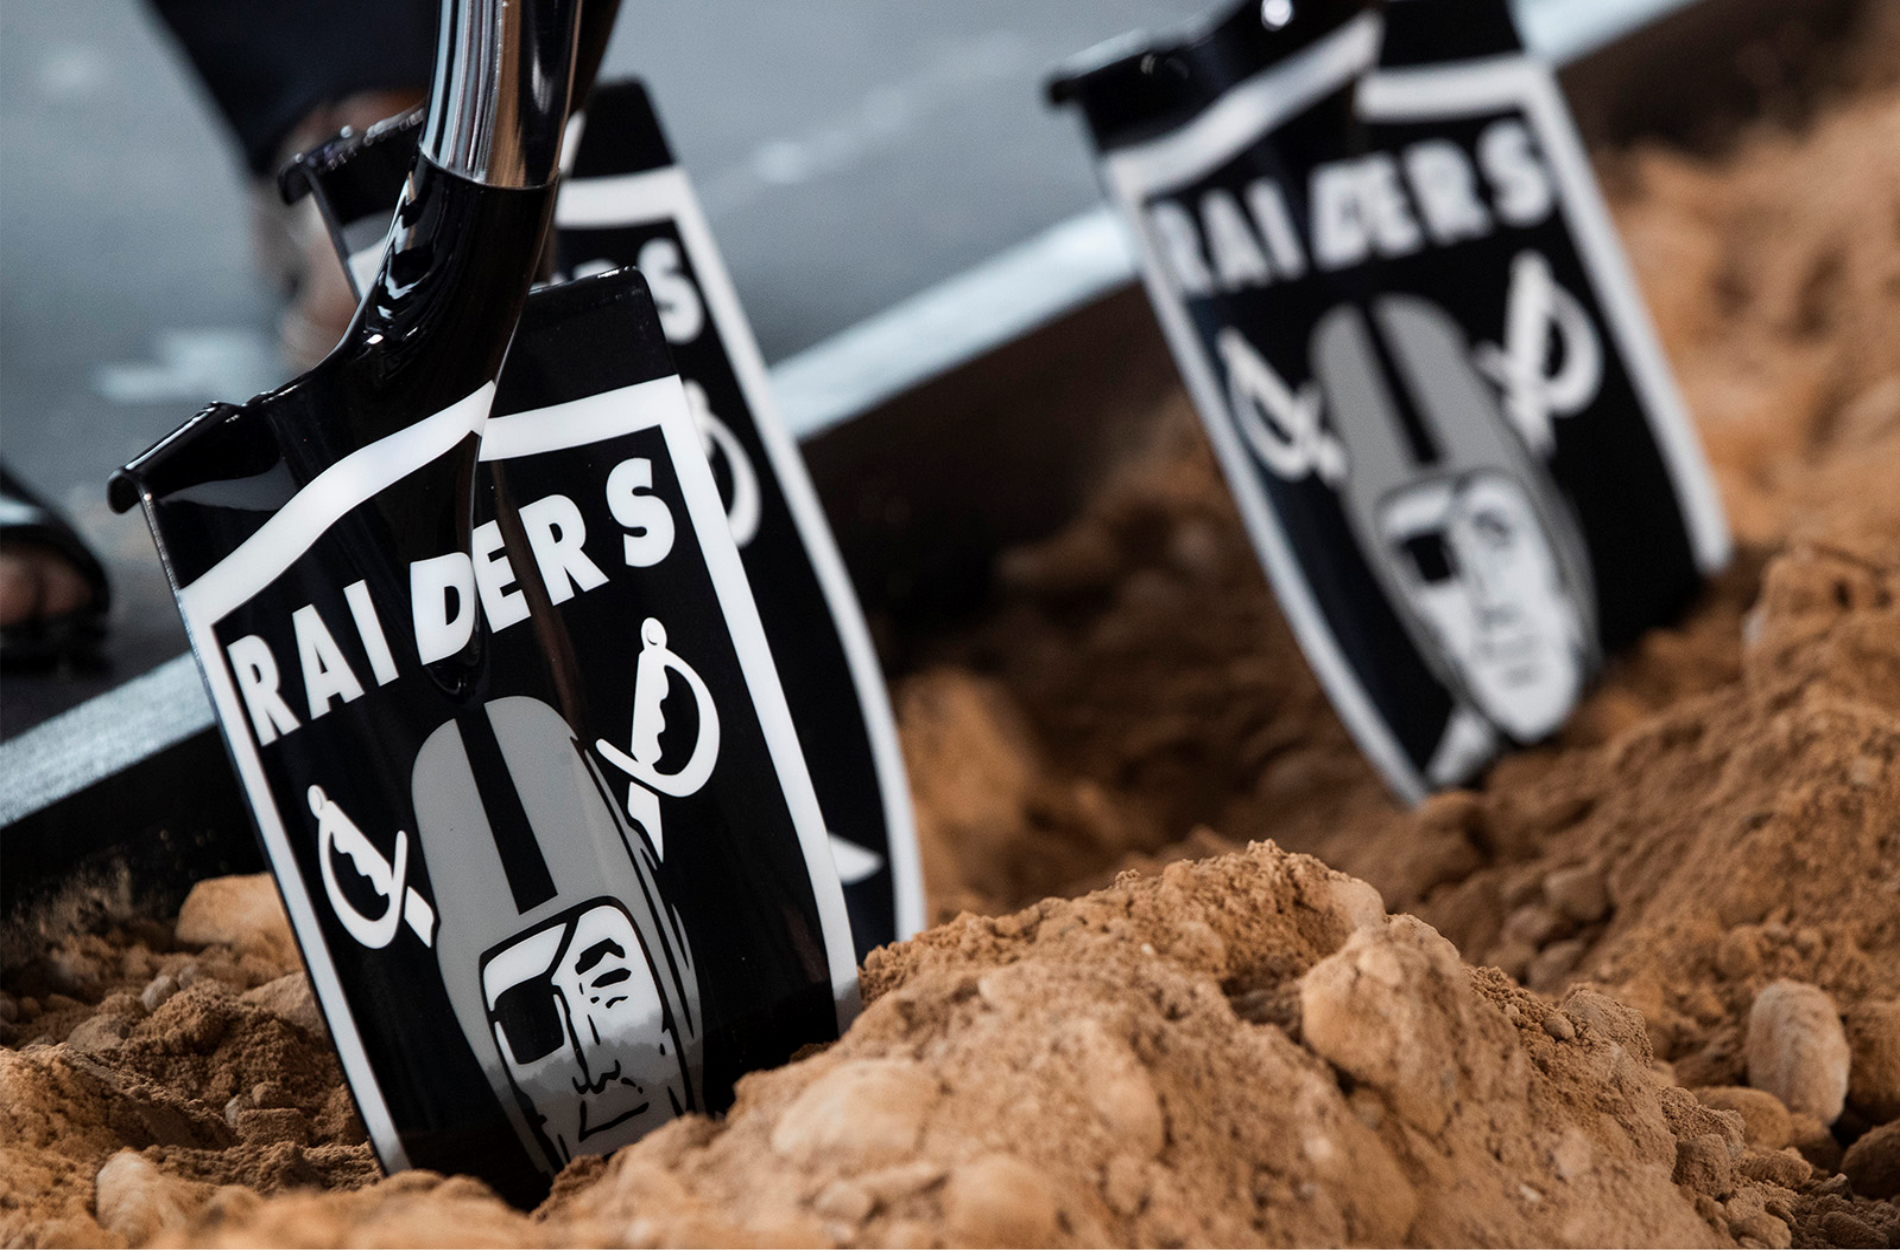 Las Vegas Raiders Custom Groundbreaking Shovel